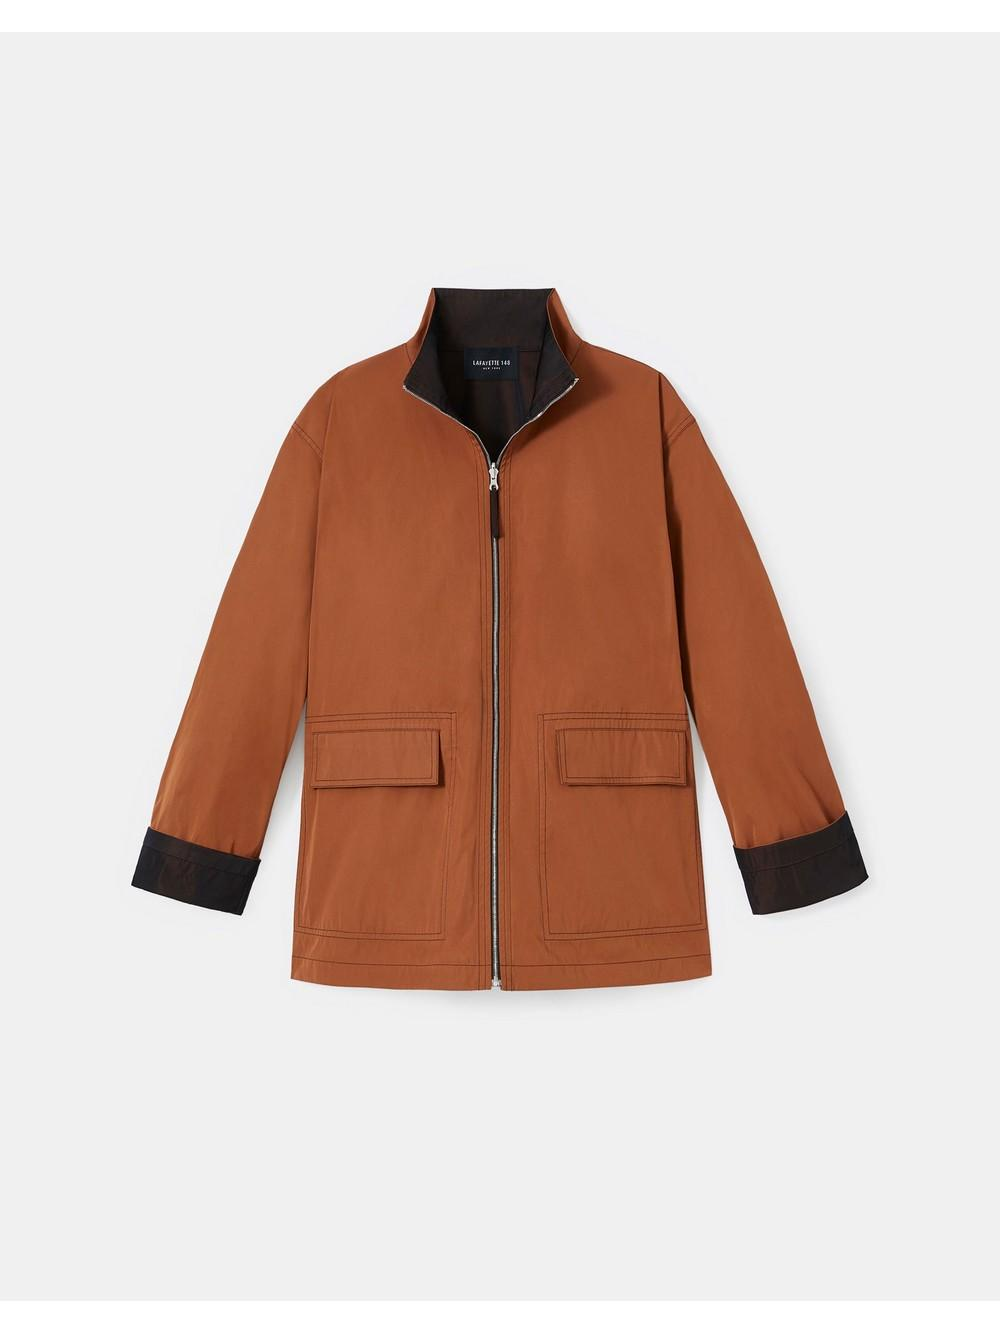 Riener Reversible Jacket Item # MQ671R-1G91